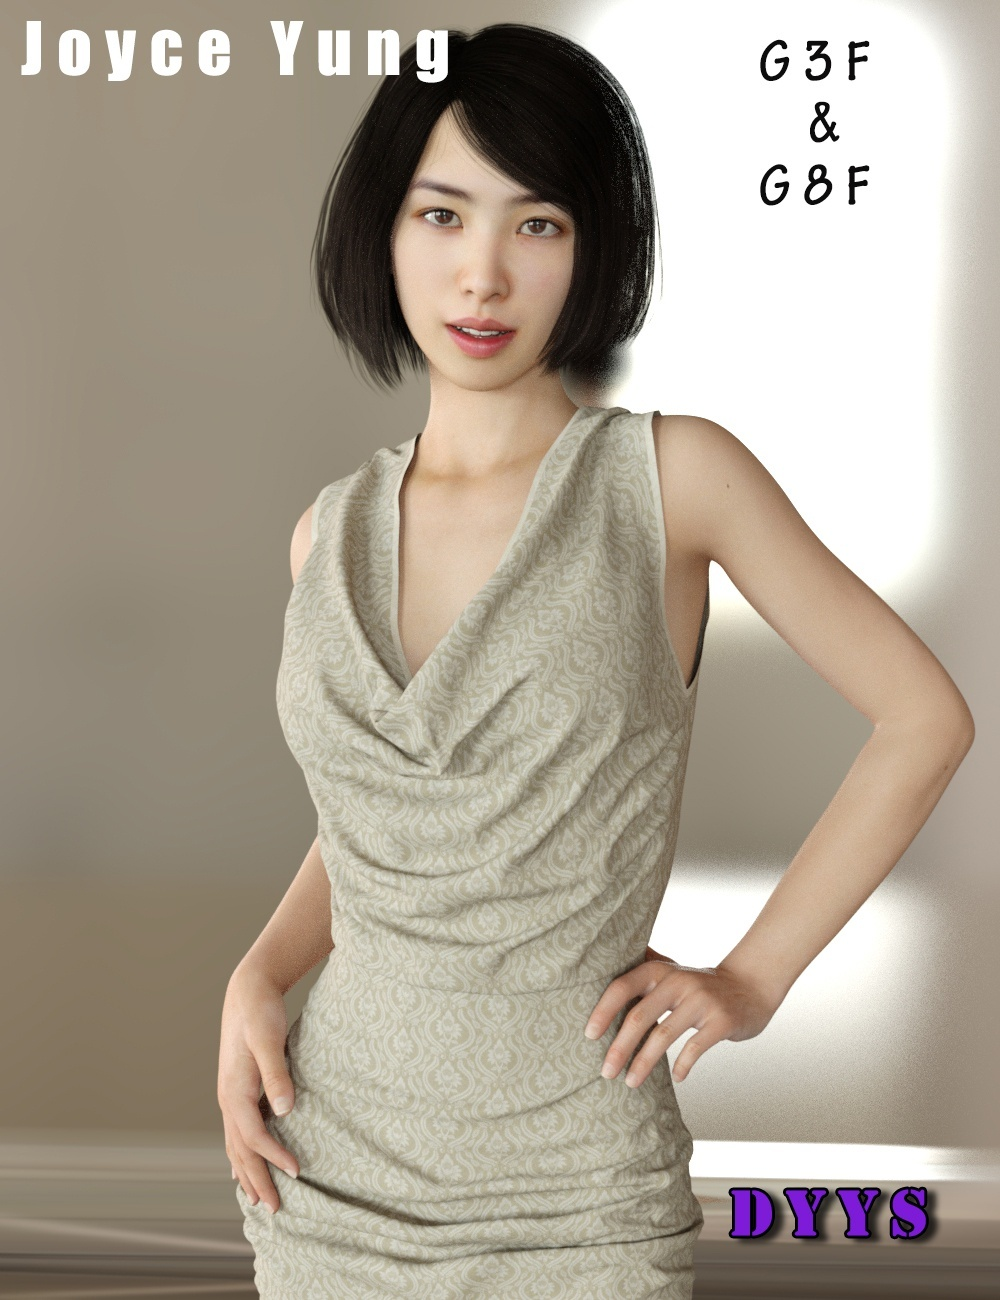 Joyce Yung For G3F And G8F